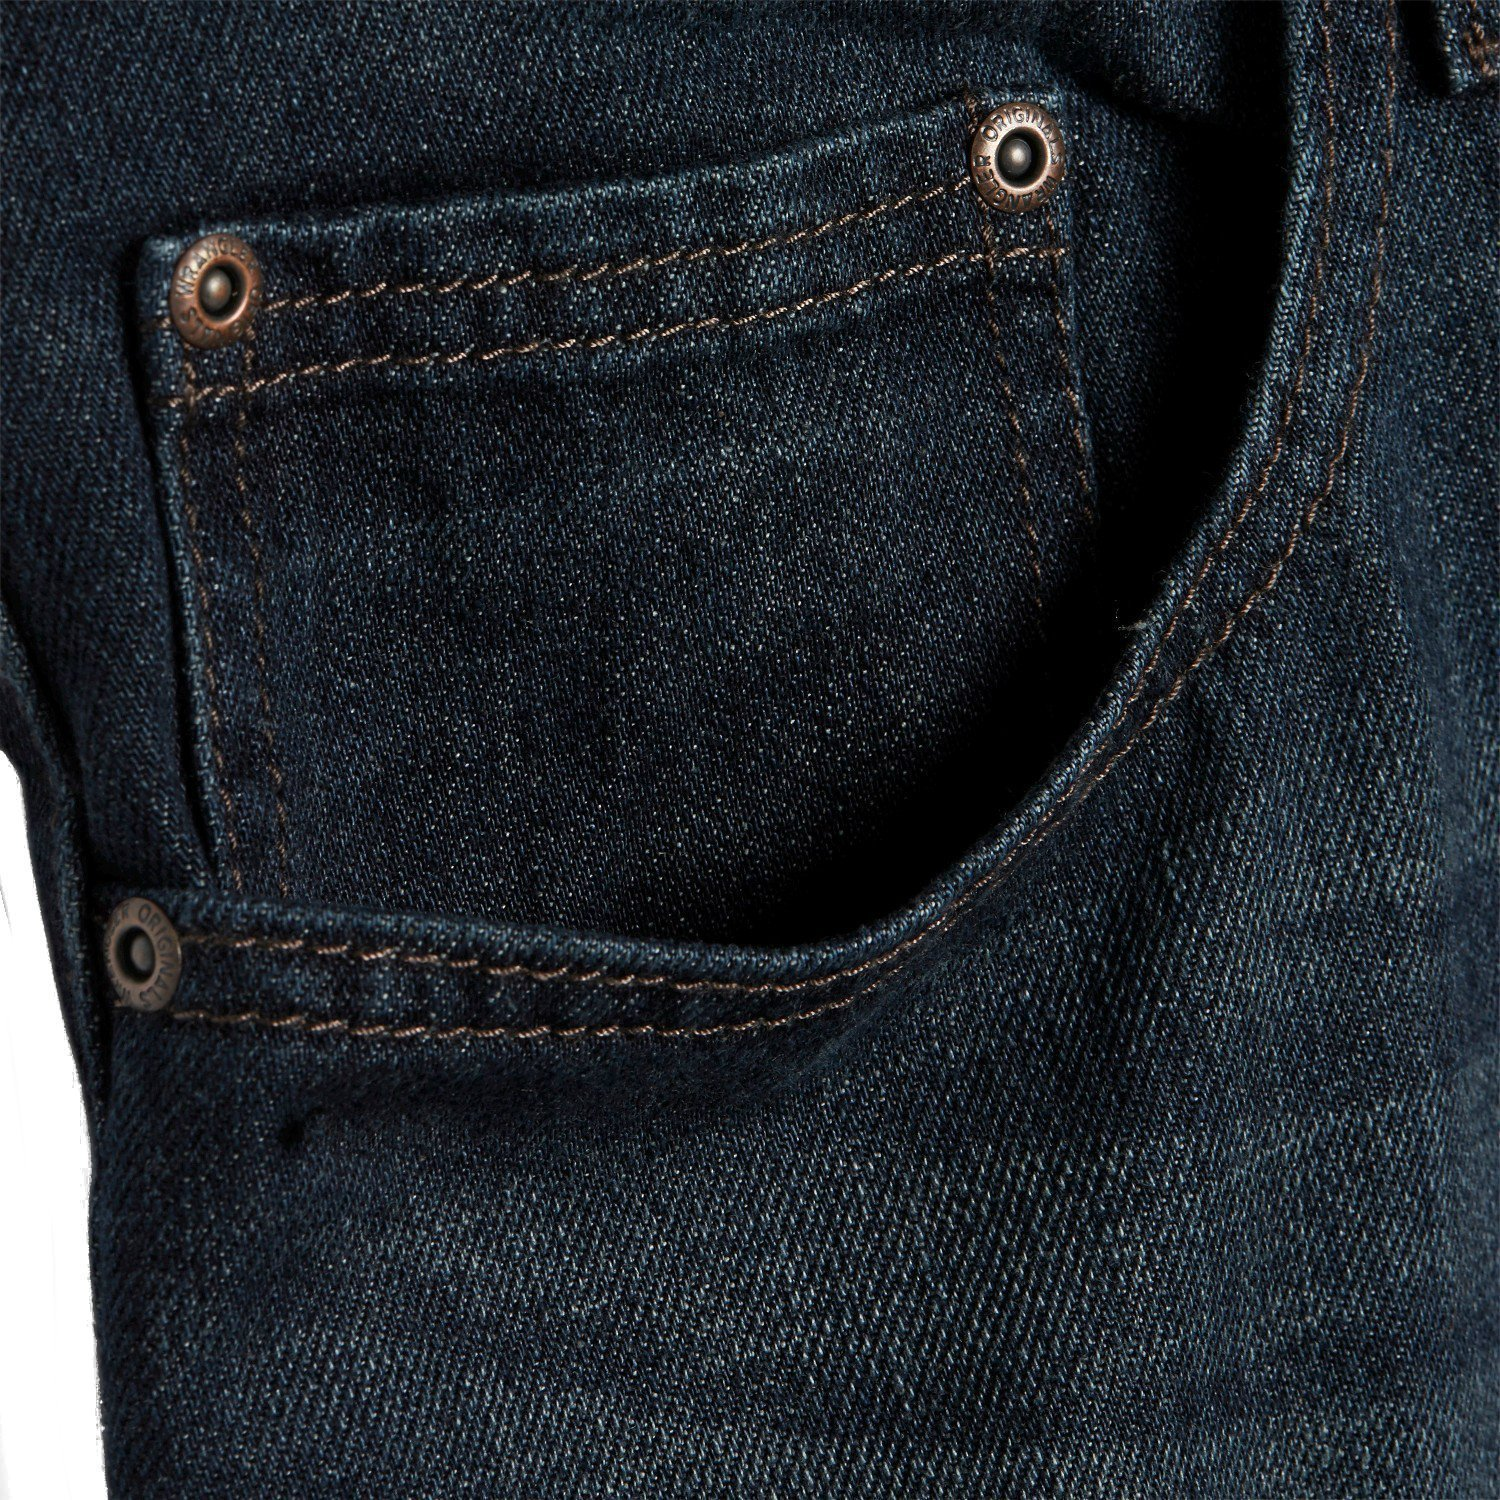 b99baa4834f Wrangler Men's 5-Star Relaxed Fit Jeans - Quartz Wash Size 30x32 at Amazon  Men's Clothing store: